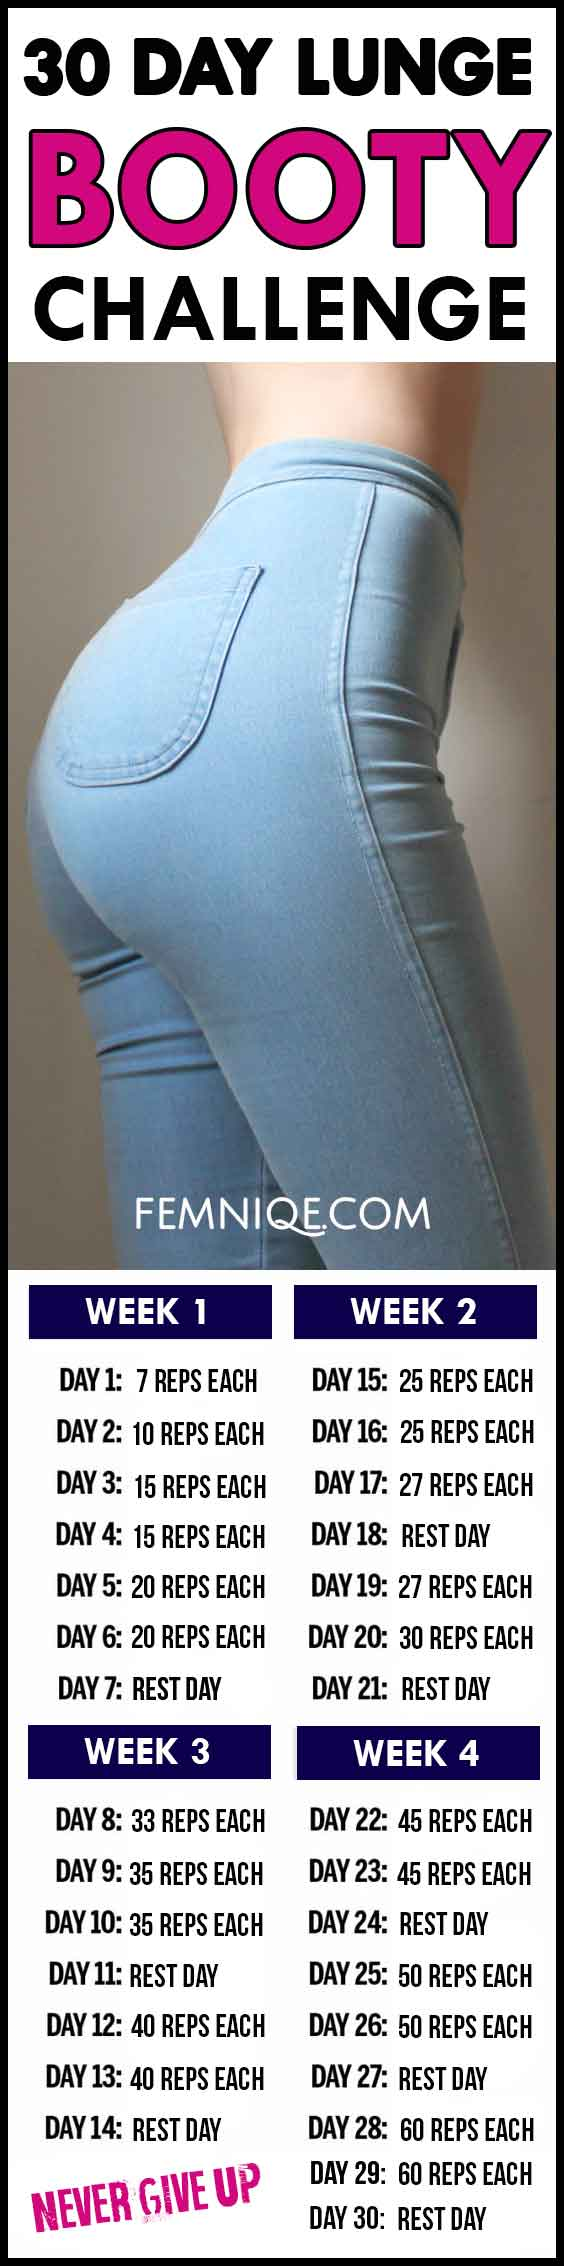 30 Day Lunge Challenge For Booty and Thighs